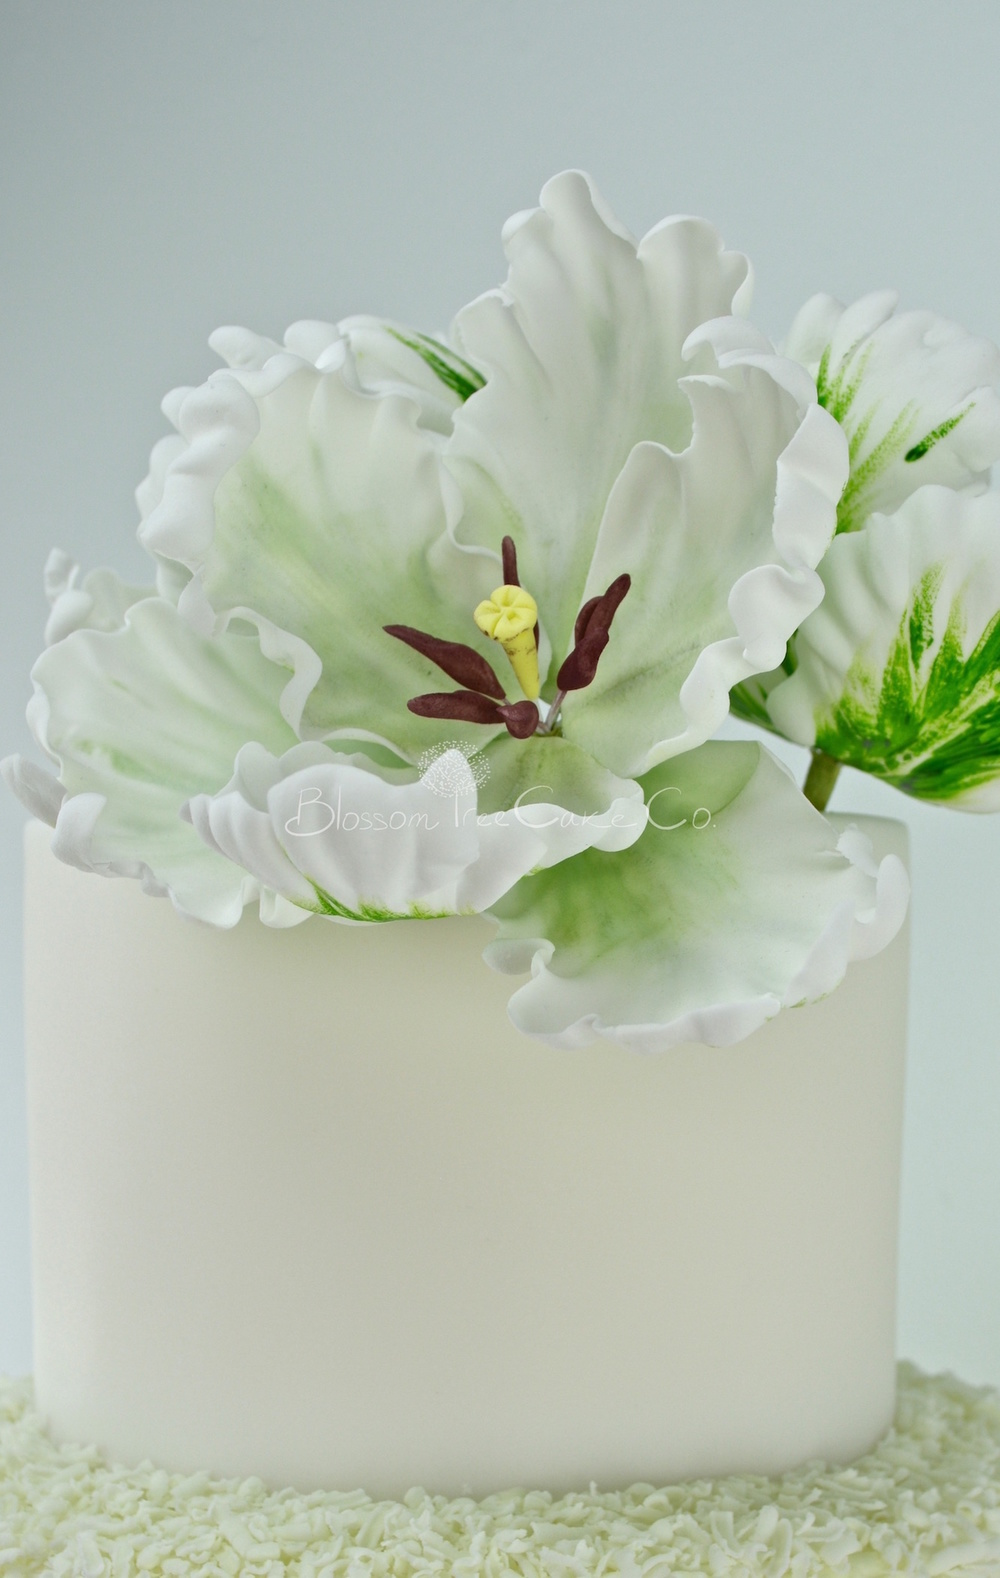 White and Green Parrot Tulips with Gold Leaf by Blossom Tree Cake Co Harrogate North Yorkshire_flower 2.jpg